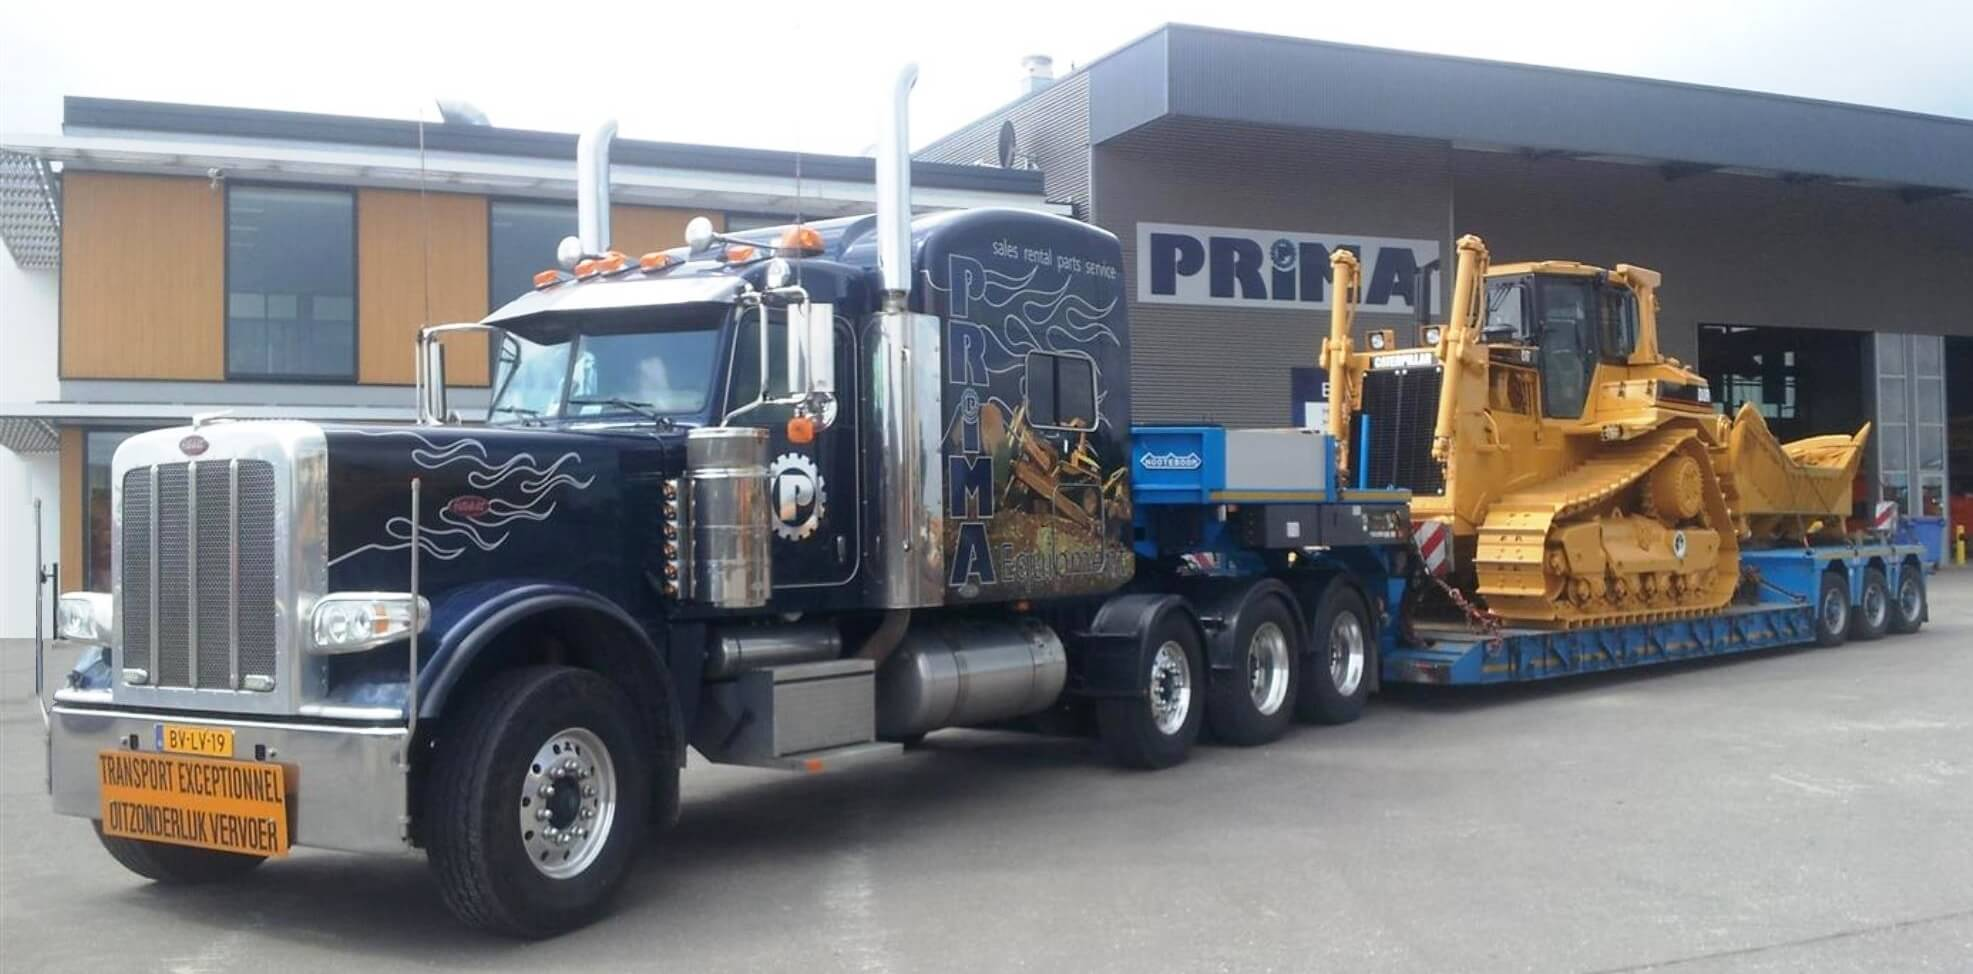 PRIMA Equipment, used equipment and service